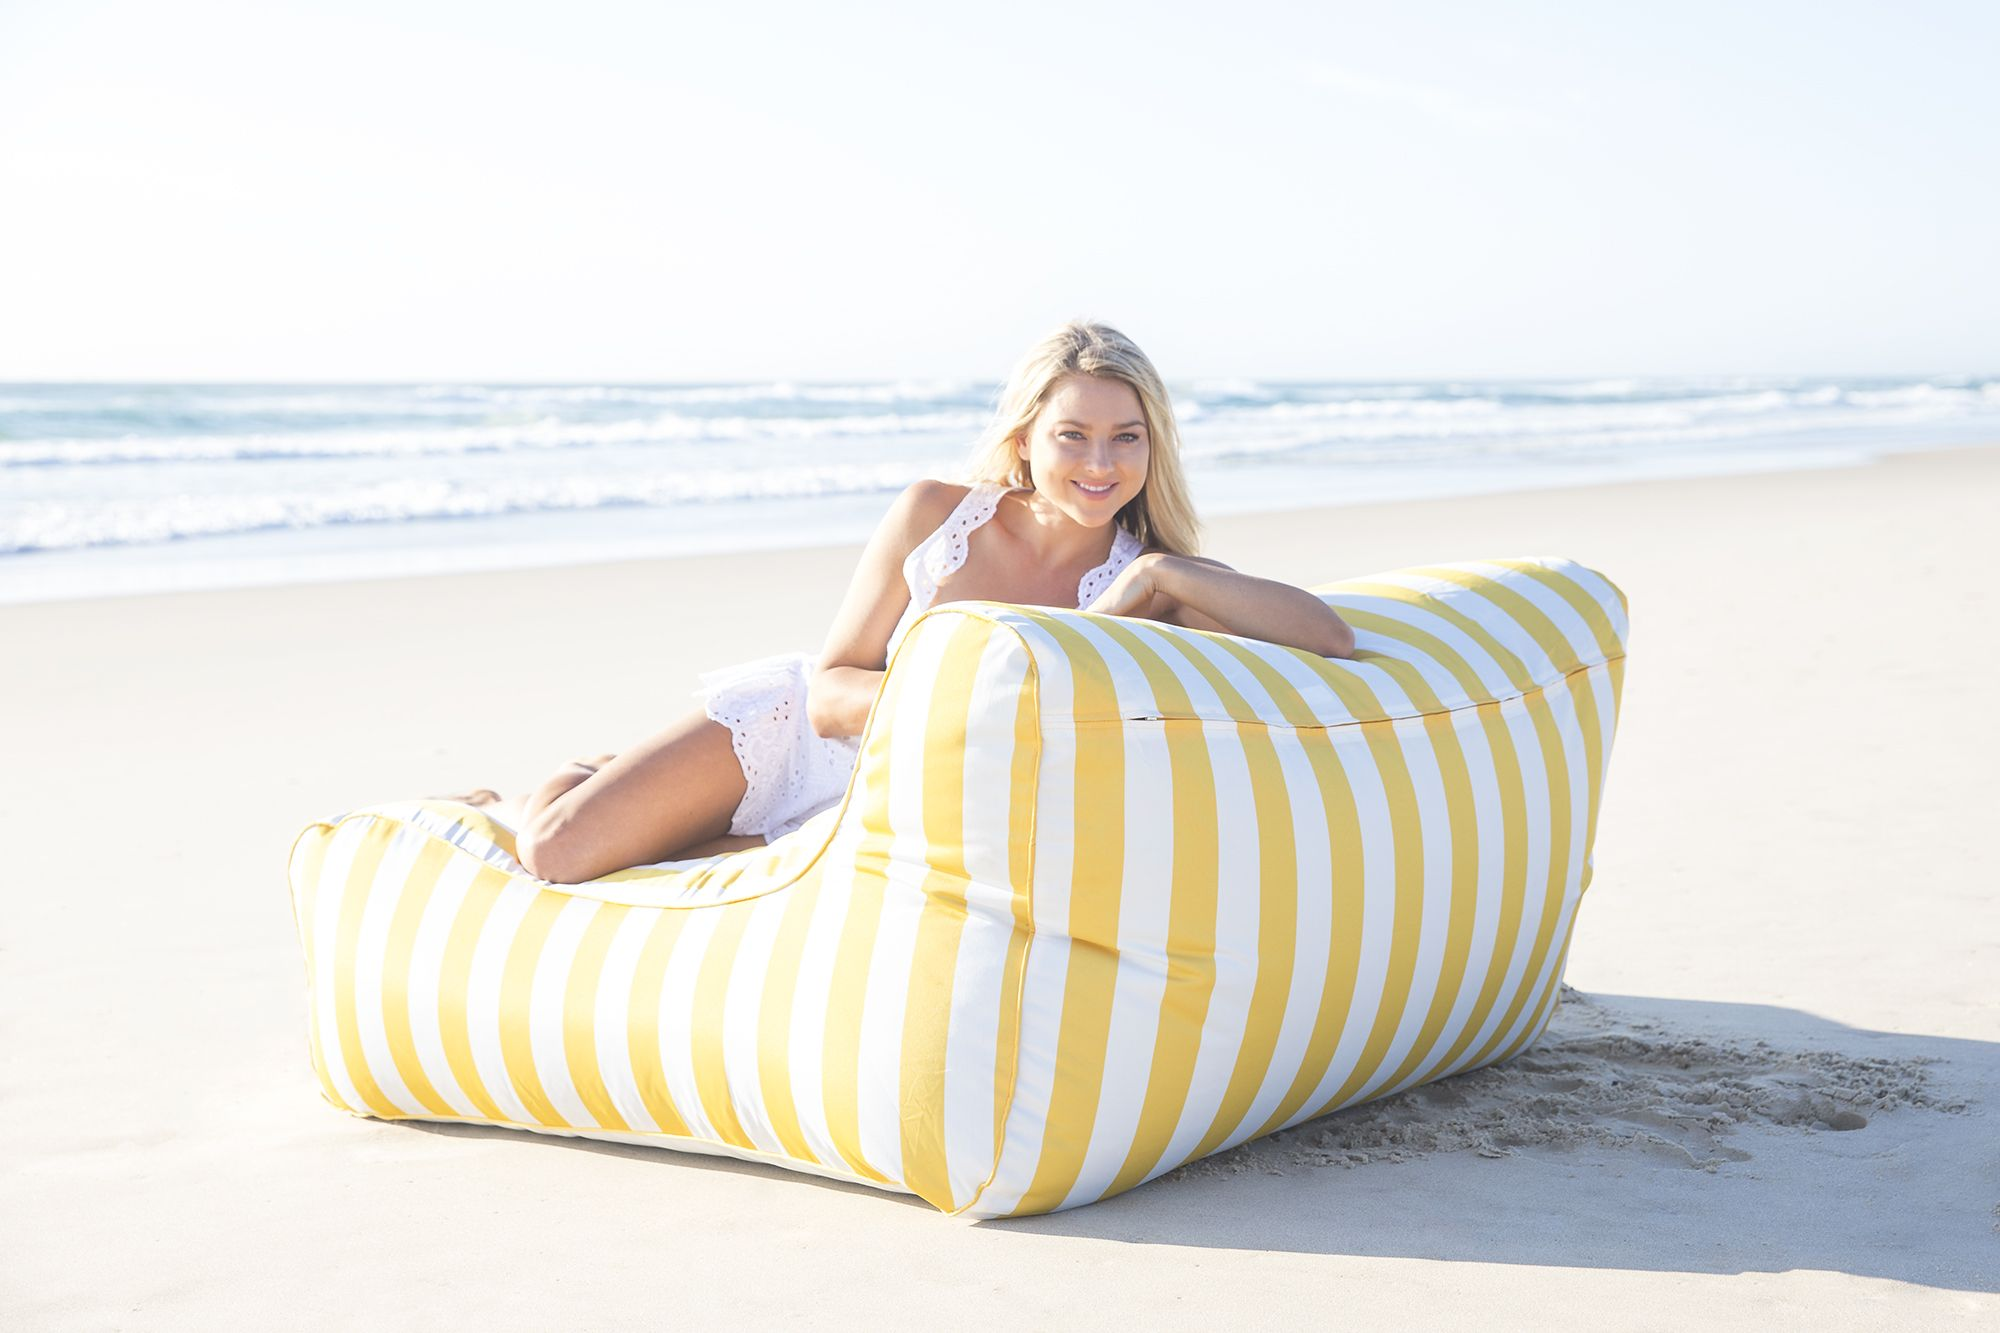 Sitzliege Outdoor Yellow Stripe Uv Lounger Dazzlingly Vibrant Add Some Sunshine